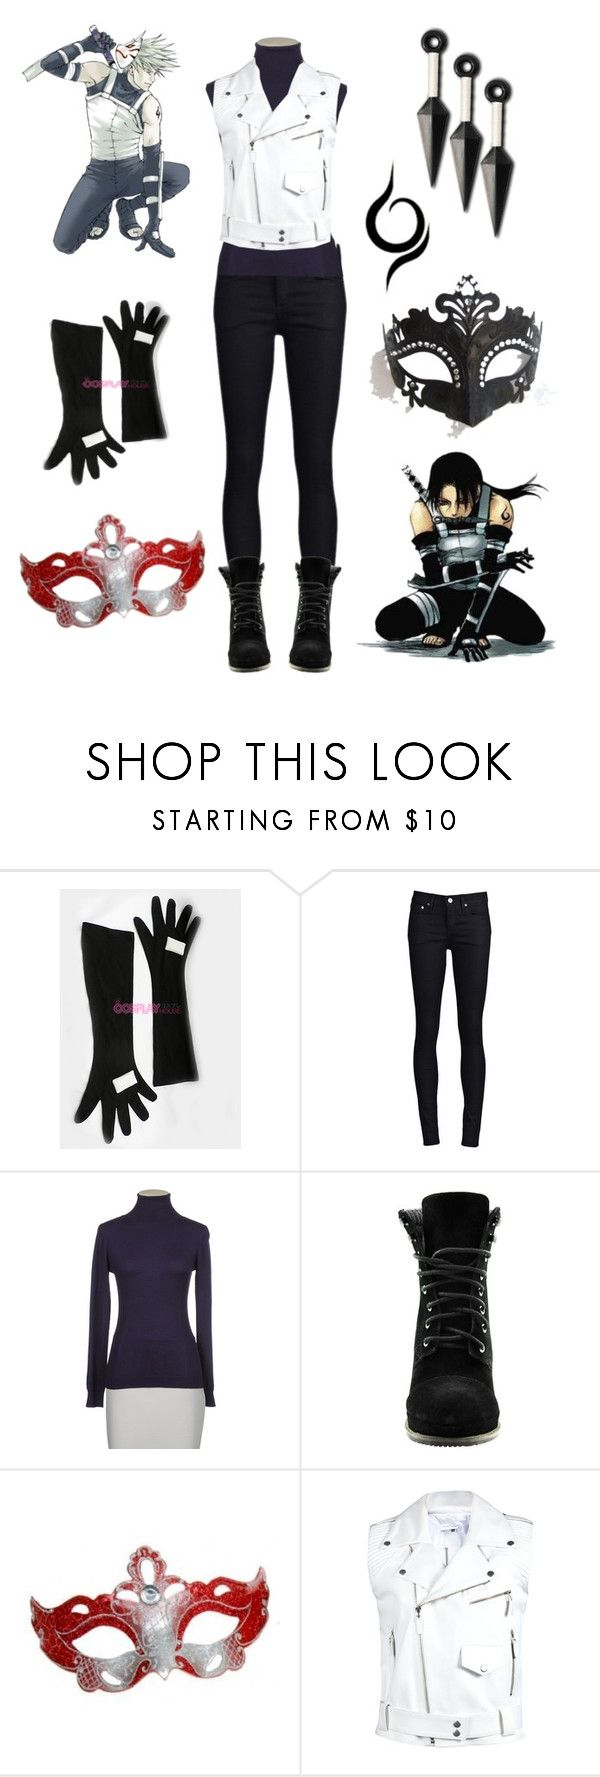 """""""Casual Cosplay - Anbu"""" by casual-cosplay ❤ liked on Polyvore featuring THVM, Pinko, H by Halston, Masquerade, kakashi, anime, naruto, itachi, cosplay and anbu"""